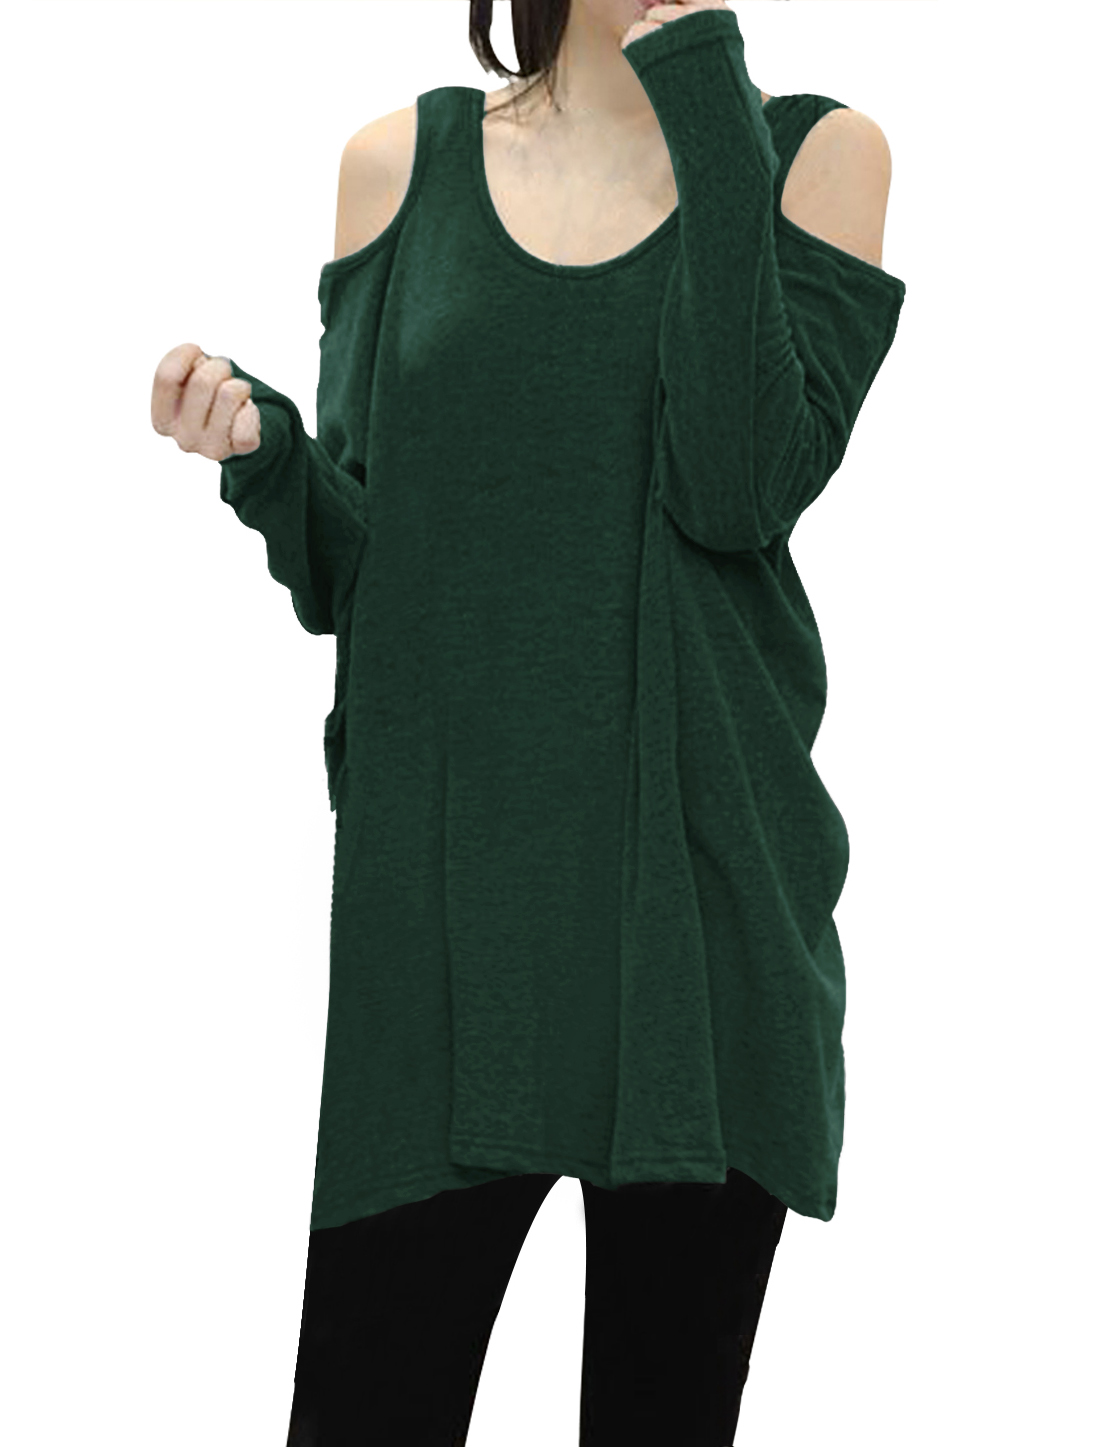 Ladies Scoop Neck Cut Out Shoulder Oversized Tunic Top Green S